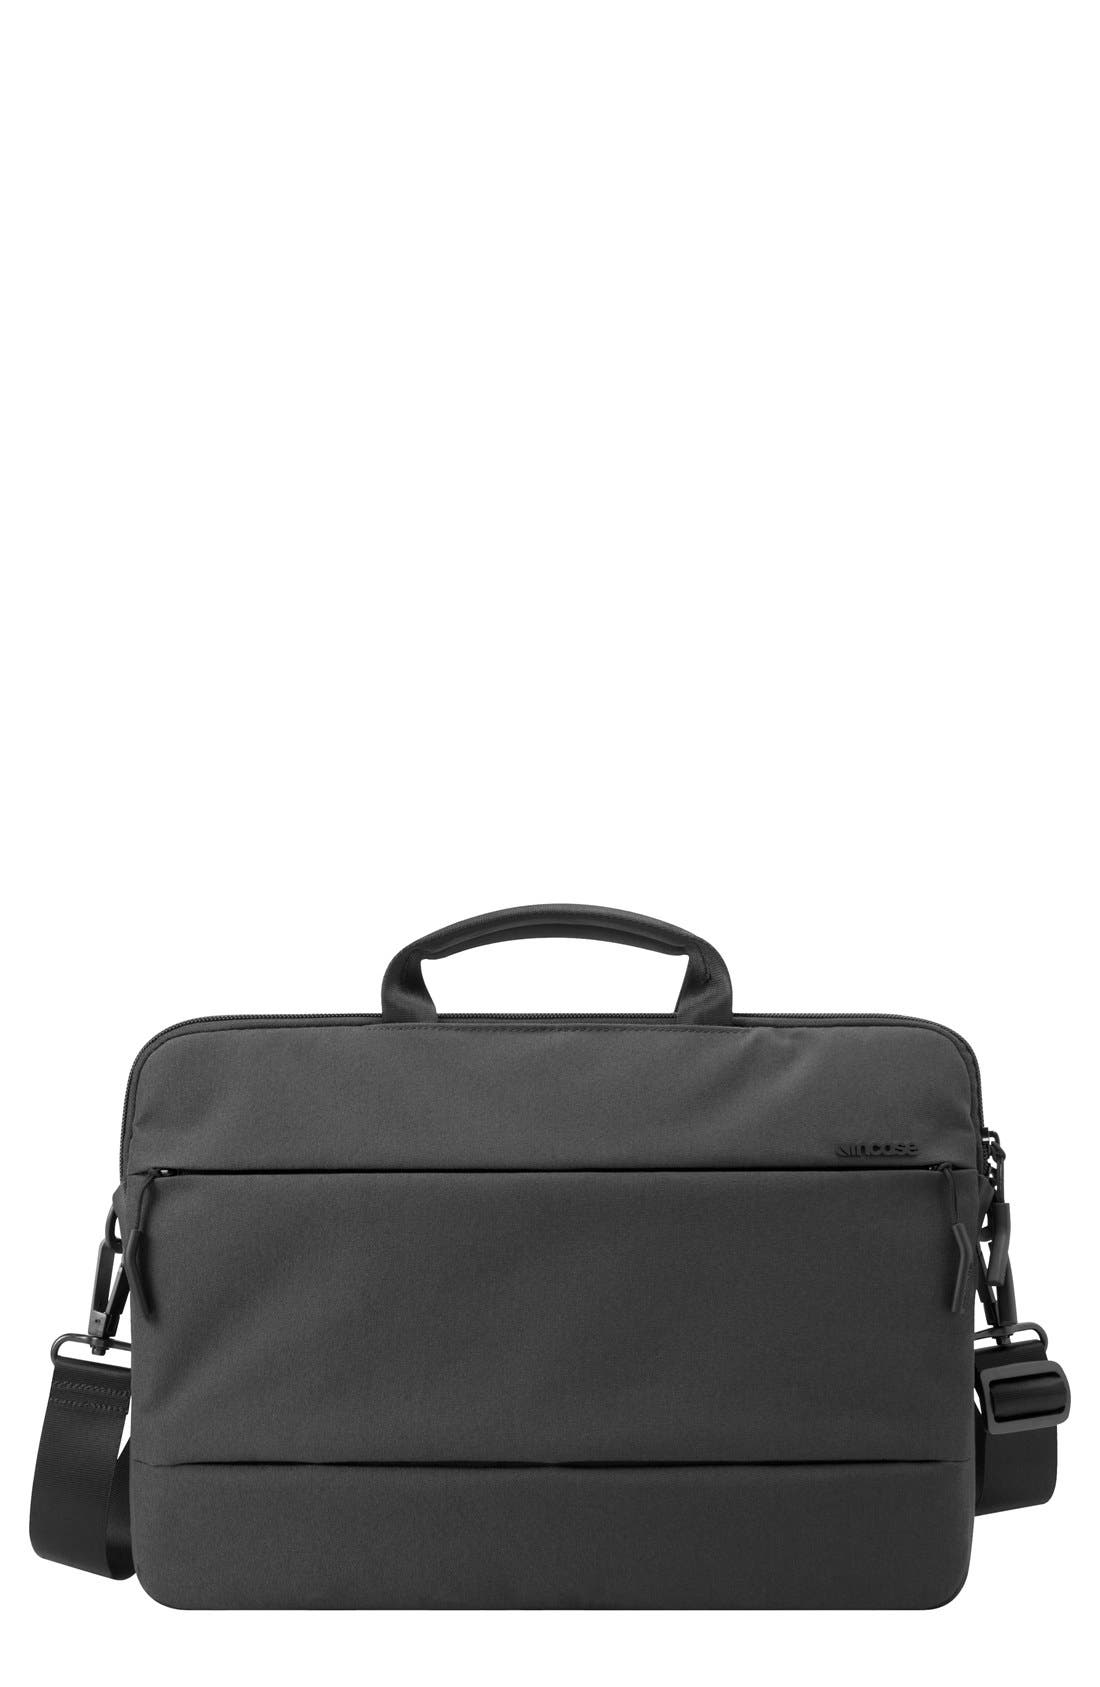 City Collection 15-Inch Briefcase,                             Main thumbnail 1, color,                             BLACK